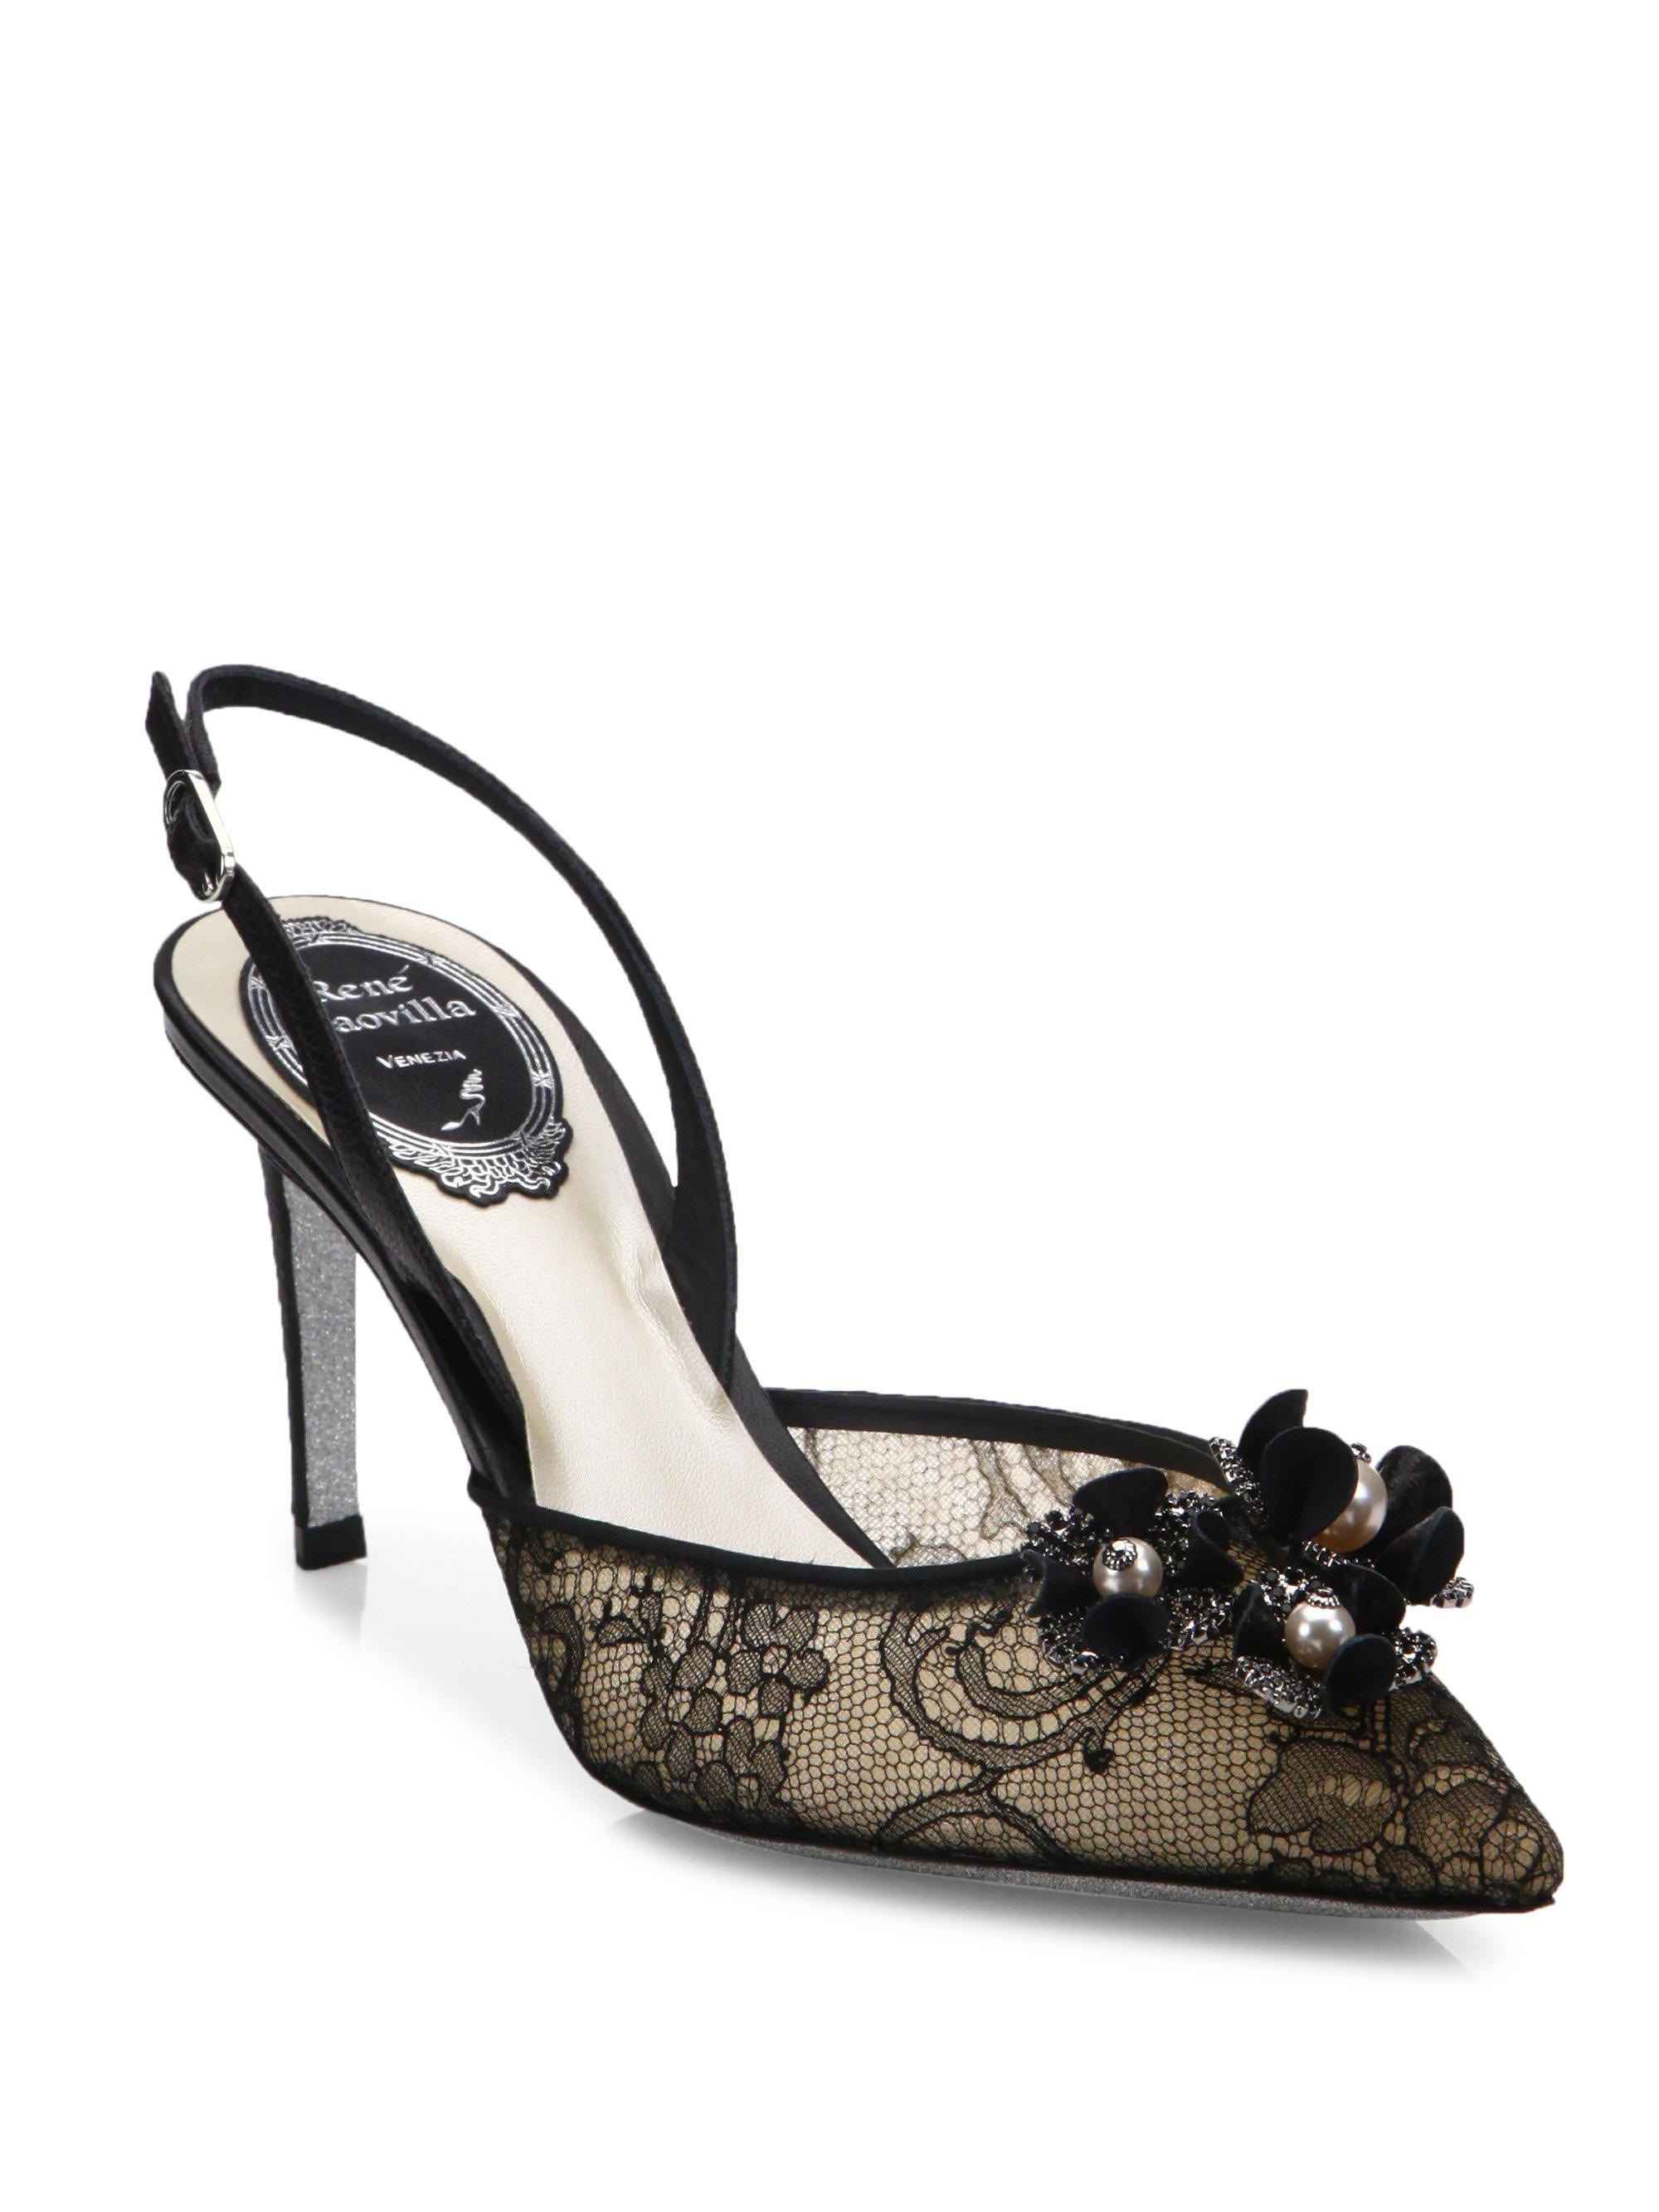 René Caovilla Lace Slingback Pumps buy cheap original clearance finishline websites sale online 2014 unisex online 4Dhkowu1zR